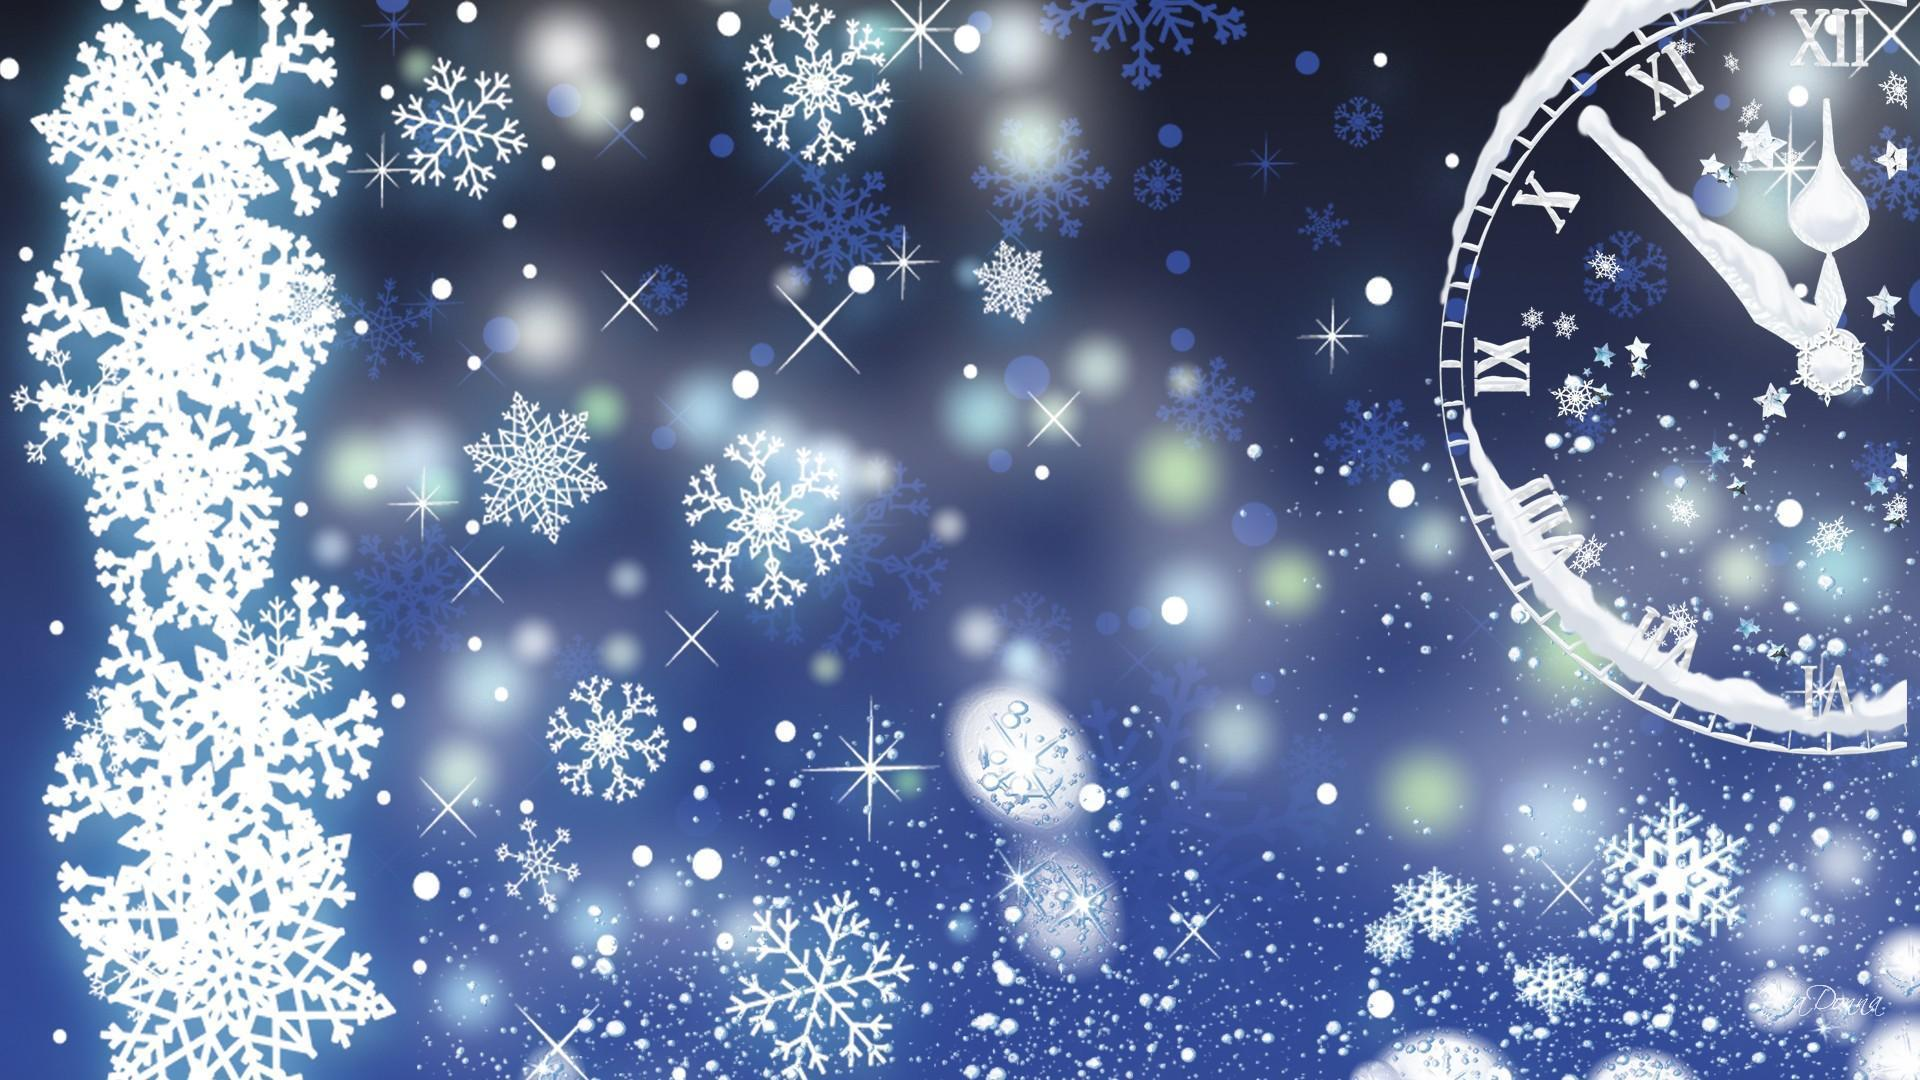 New Years Eve HD Desktop Wallpapers for Widescreen, High